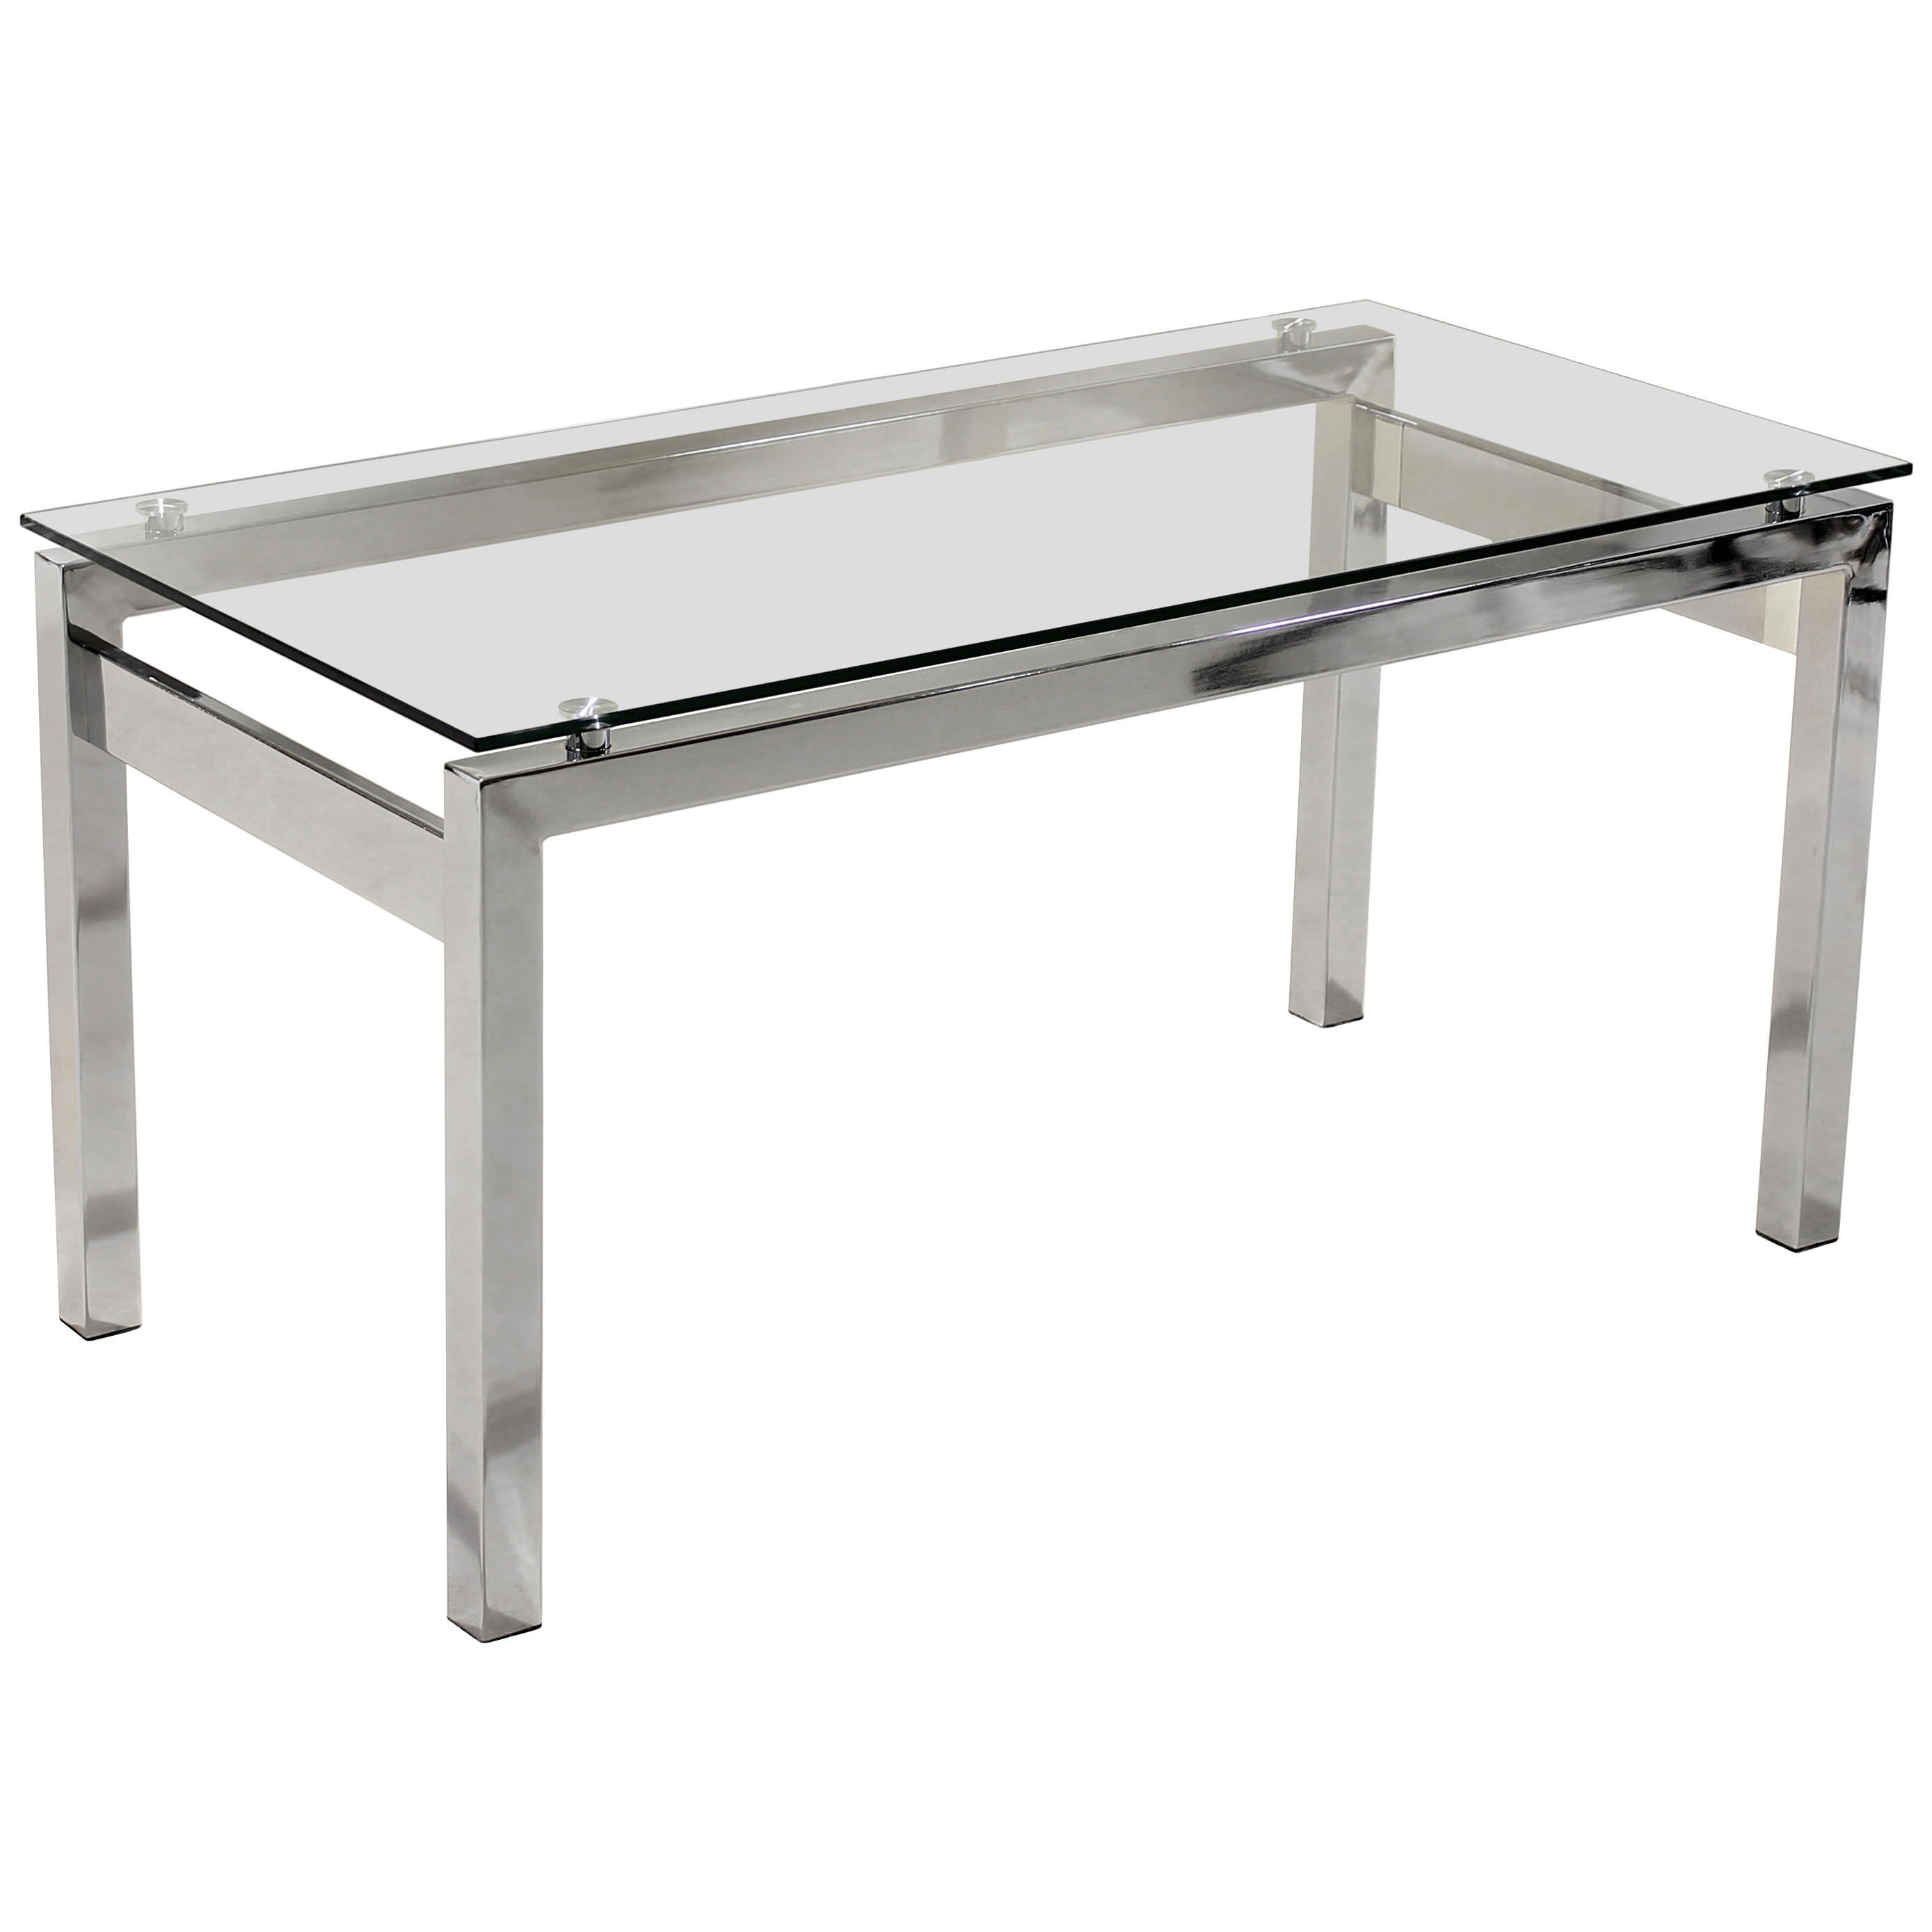 Description Chrome Coffee Table And End Lamp With Tempered Clear Glass Tops This Set Has Legs Will Suit Any Modern Or Contemporary